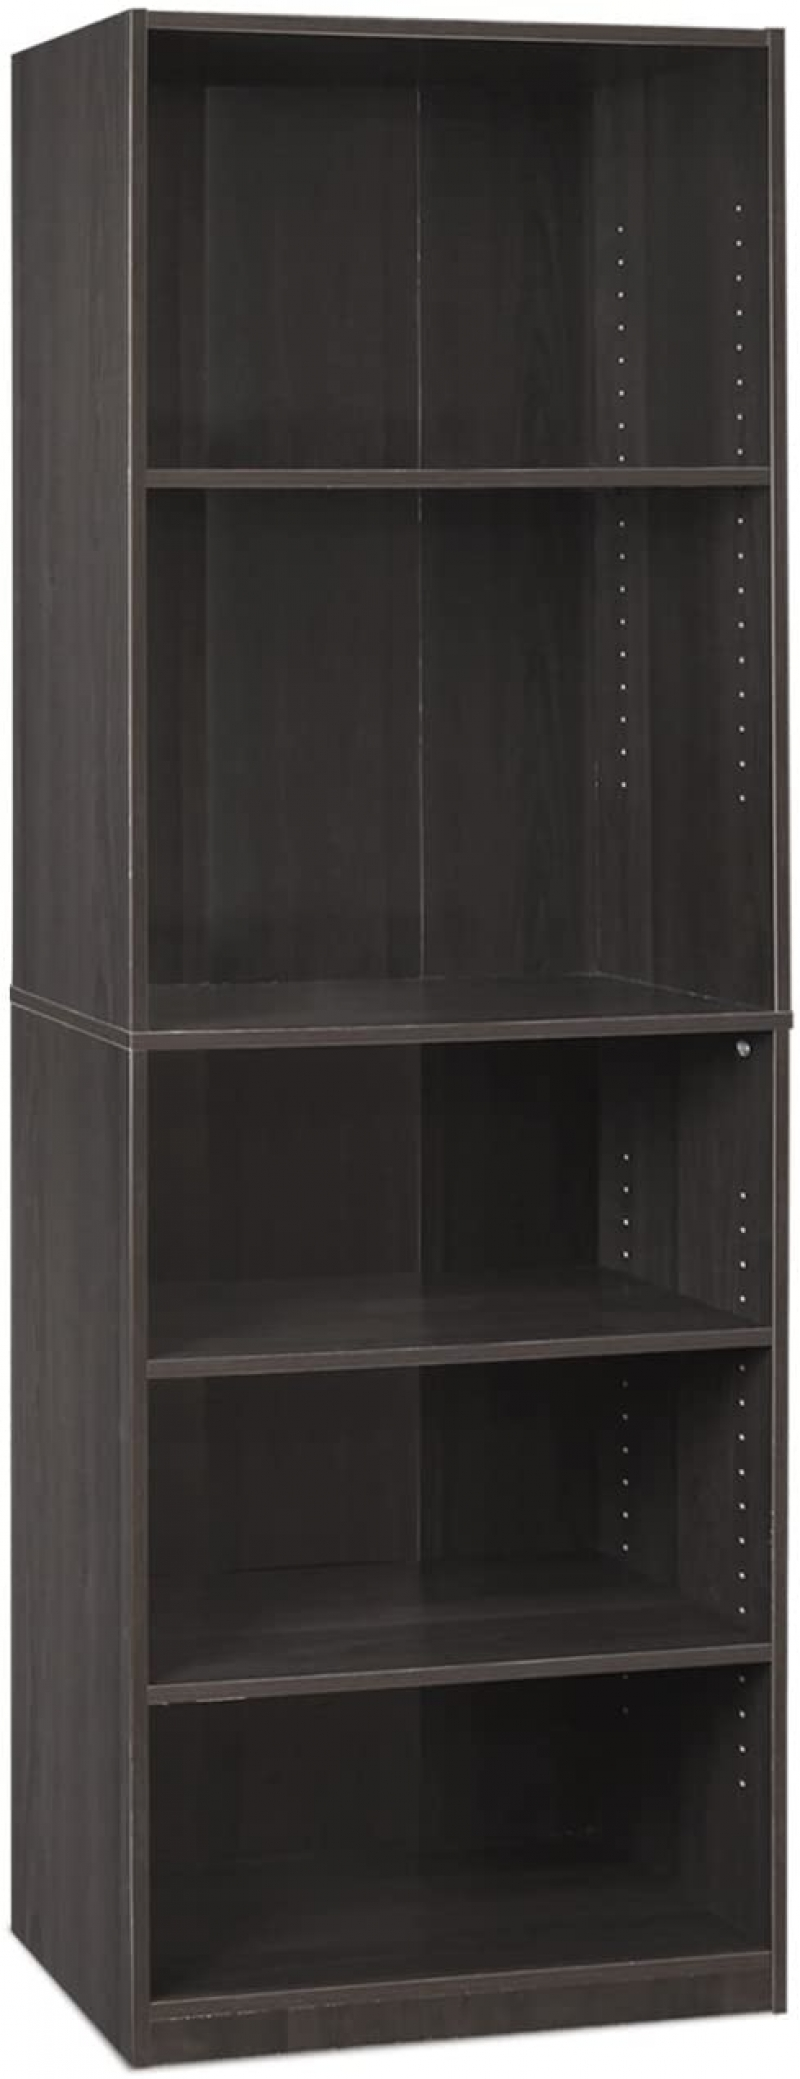 ihocon: FURINNO JAYA Simply Home 5-Shelf Bookcase, 5-Tier 五層書架